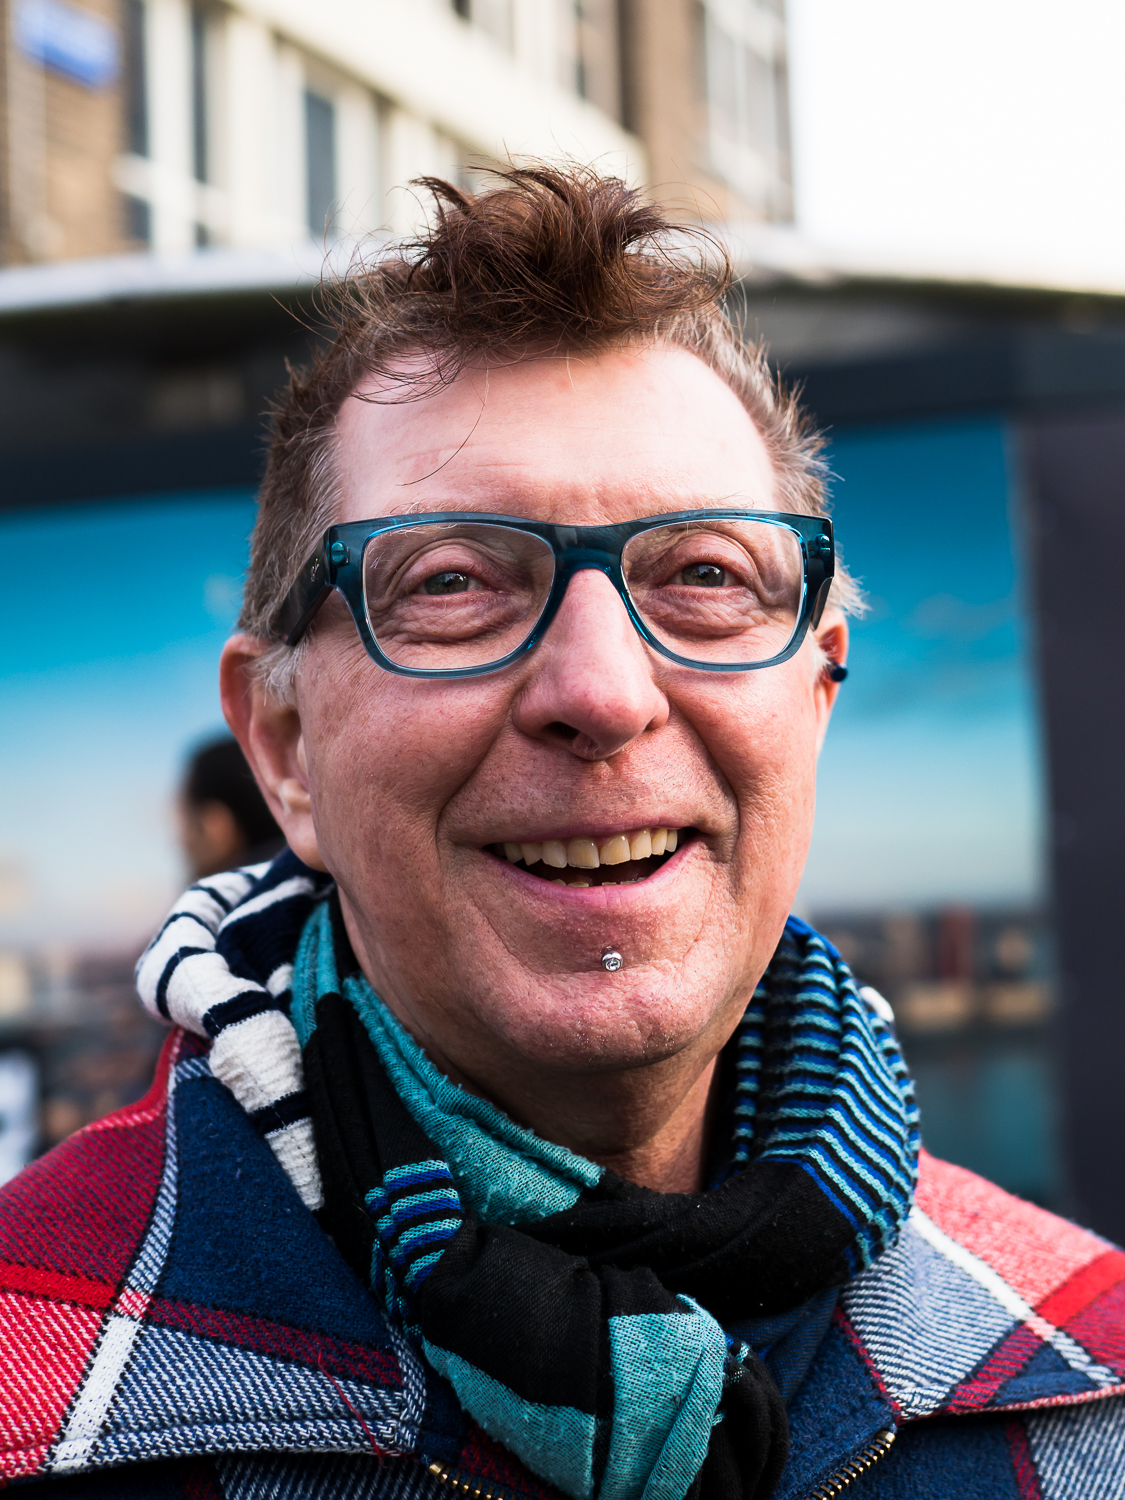 Photo taken in Rotterdam in March 2017. Sometimes I make street portraits with permission of the model. This guy lives in Emmen but was born in Rotterdam. It was a long time since he visited Rotterdam and he told me that he got quite emotional touching the Rotterdam ground again. His name is Eddy Tijssen. His colorful clothes and his friendly open face caught my intention.  Shot with Olympus OMD1 Mark 2 and Olympus 25mm f/1.2. The 25mm is perfect for this kind of portraits. Look how sharp it is!